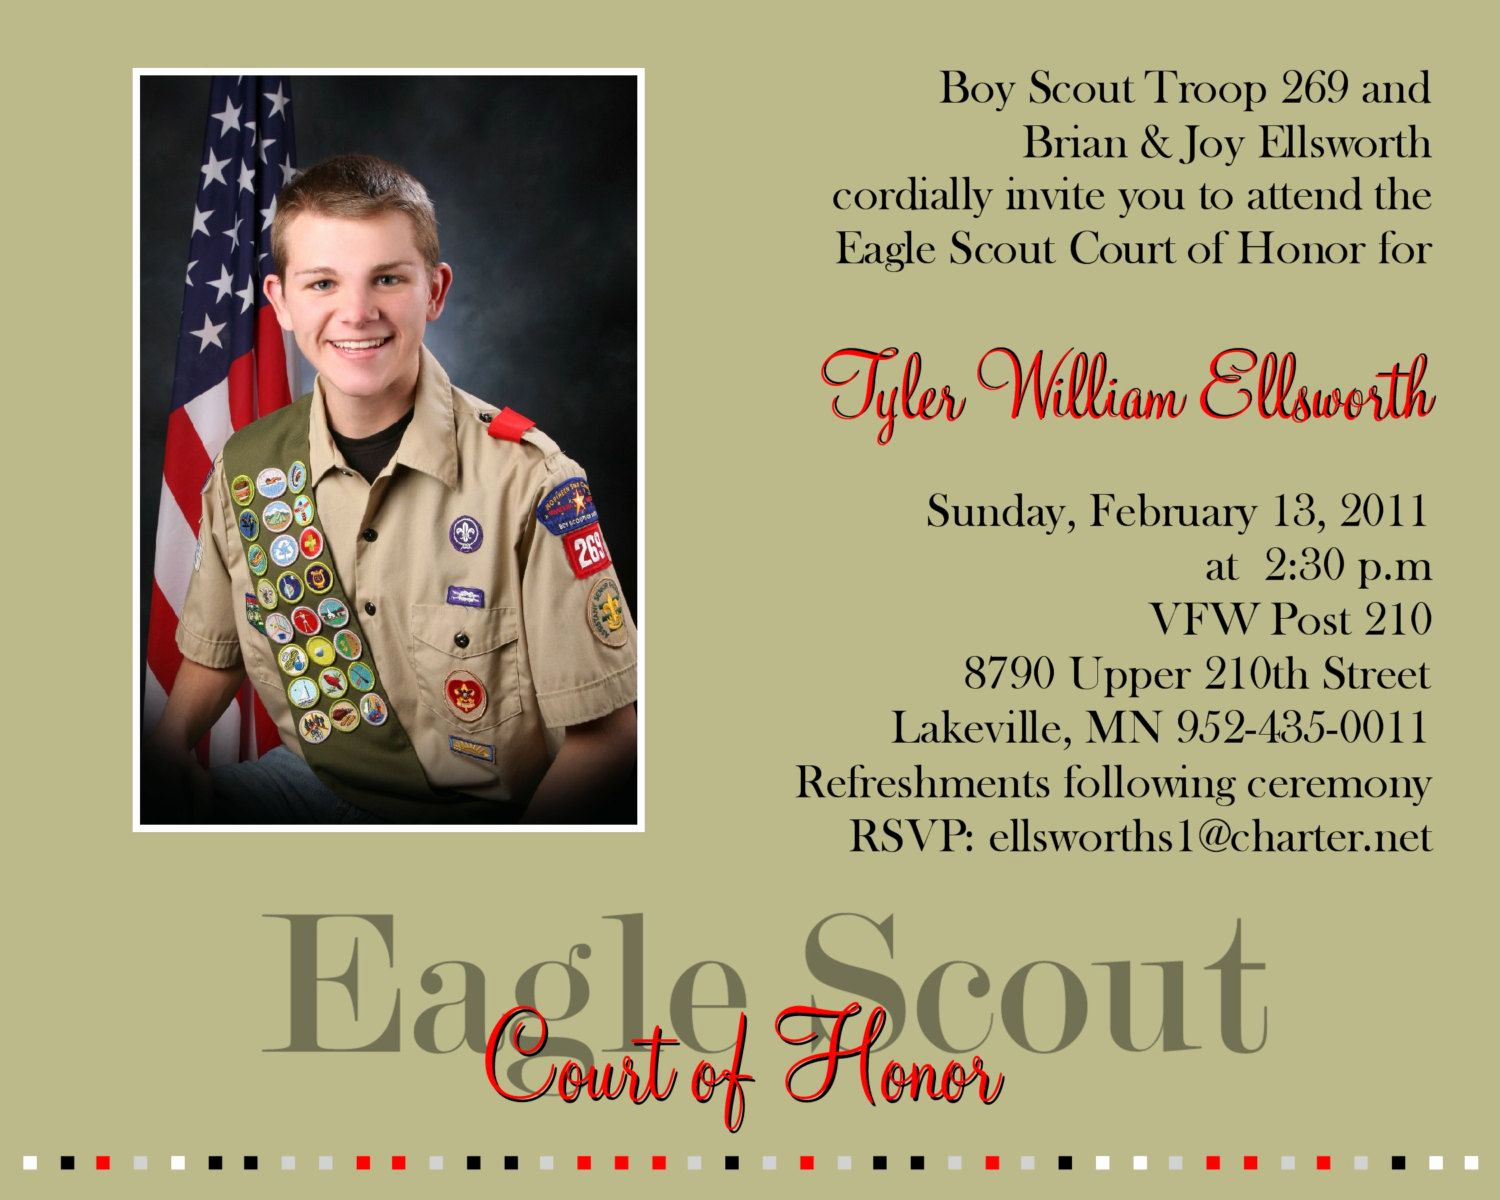 Eagle Scout Invitation Ideas Luxury Eagle Scout Court Of Honor Invitations by